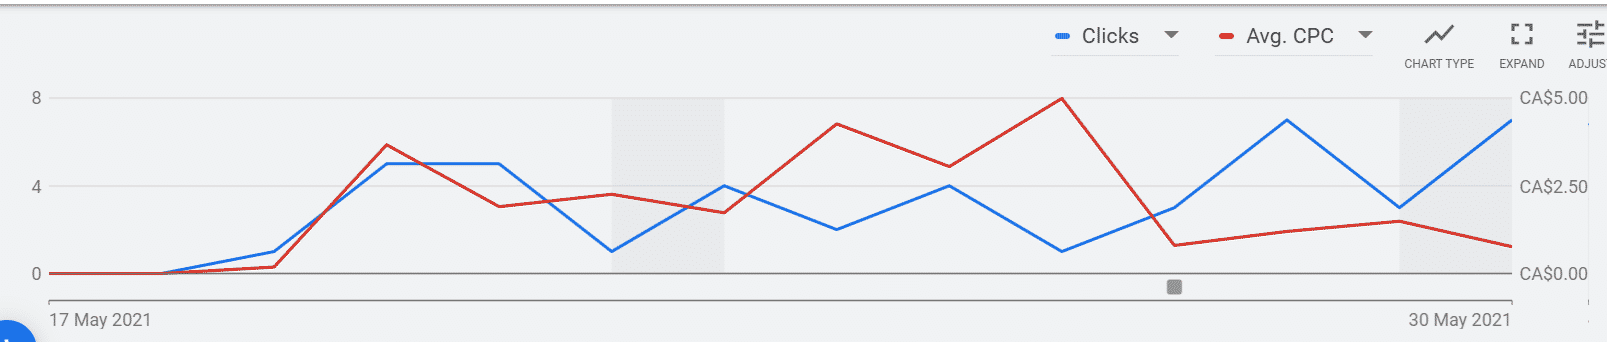 Google Display Ads Graph with CPC and Clicks